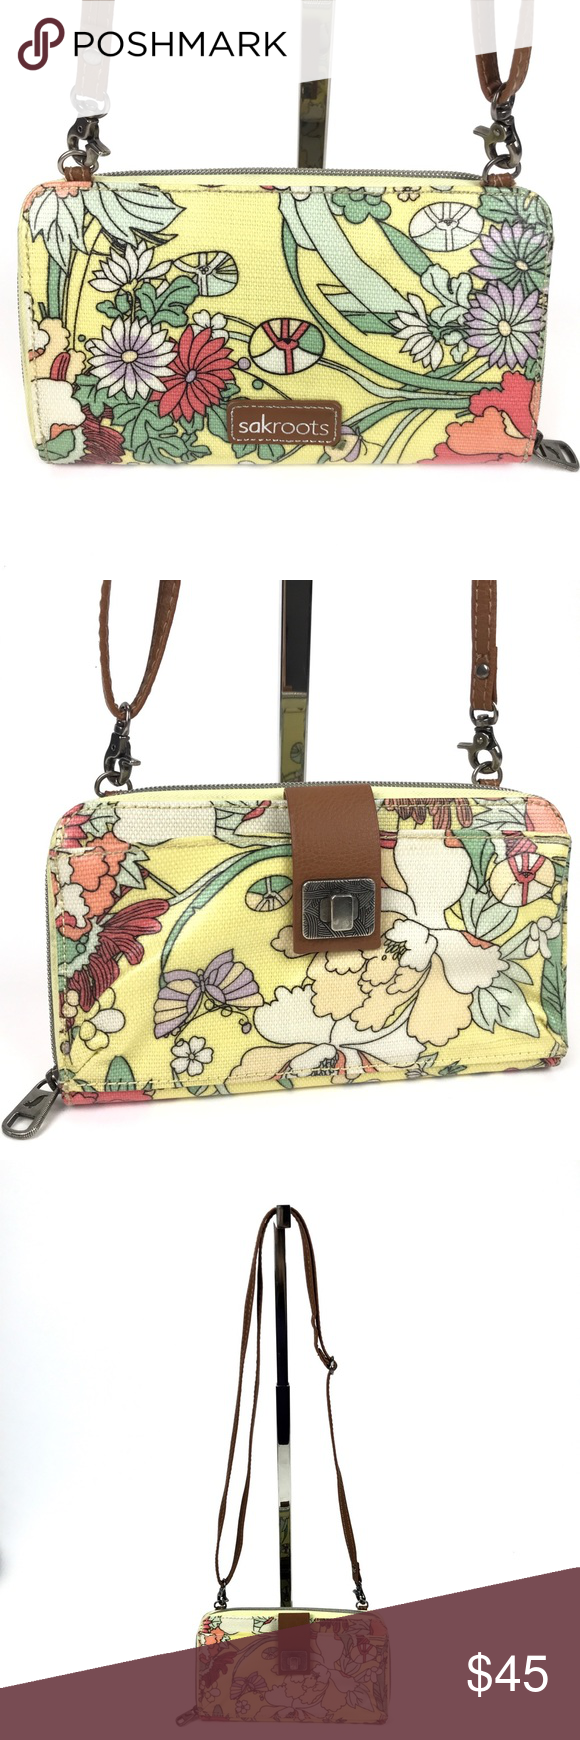 Sakroots Crossbody Clutch Sunlight Flower Power